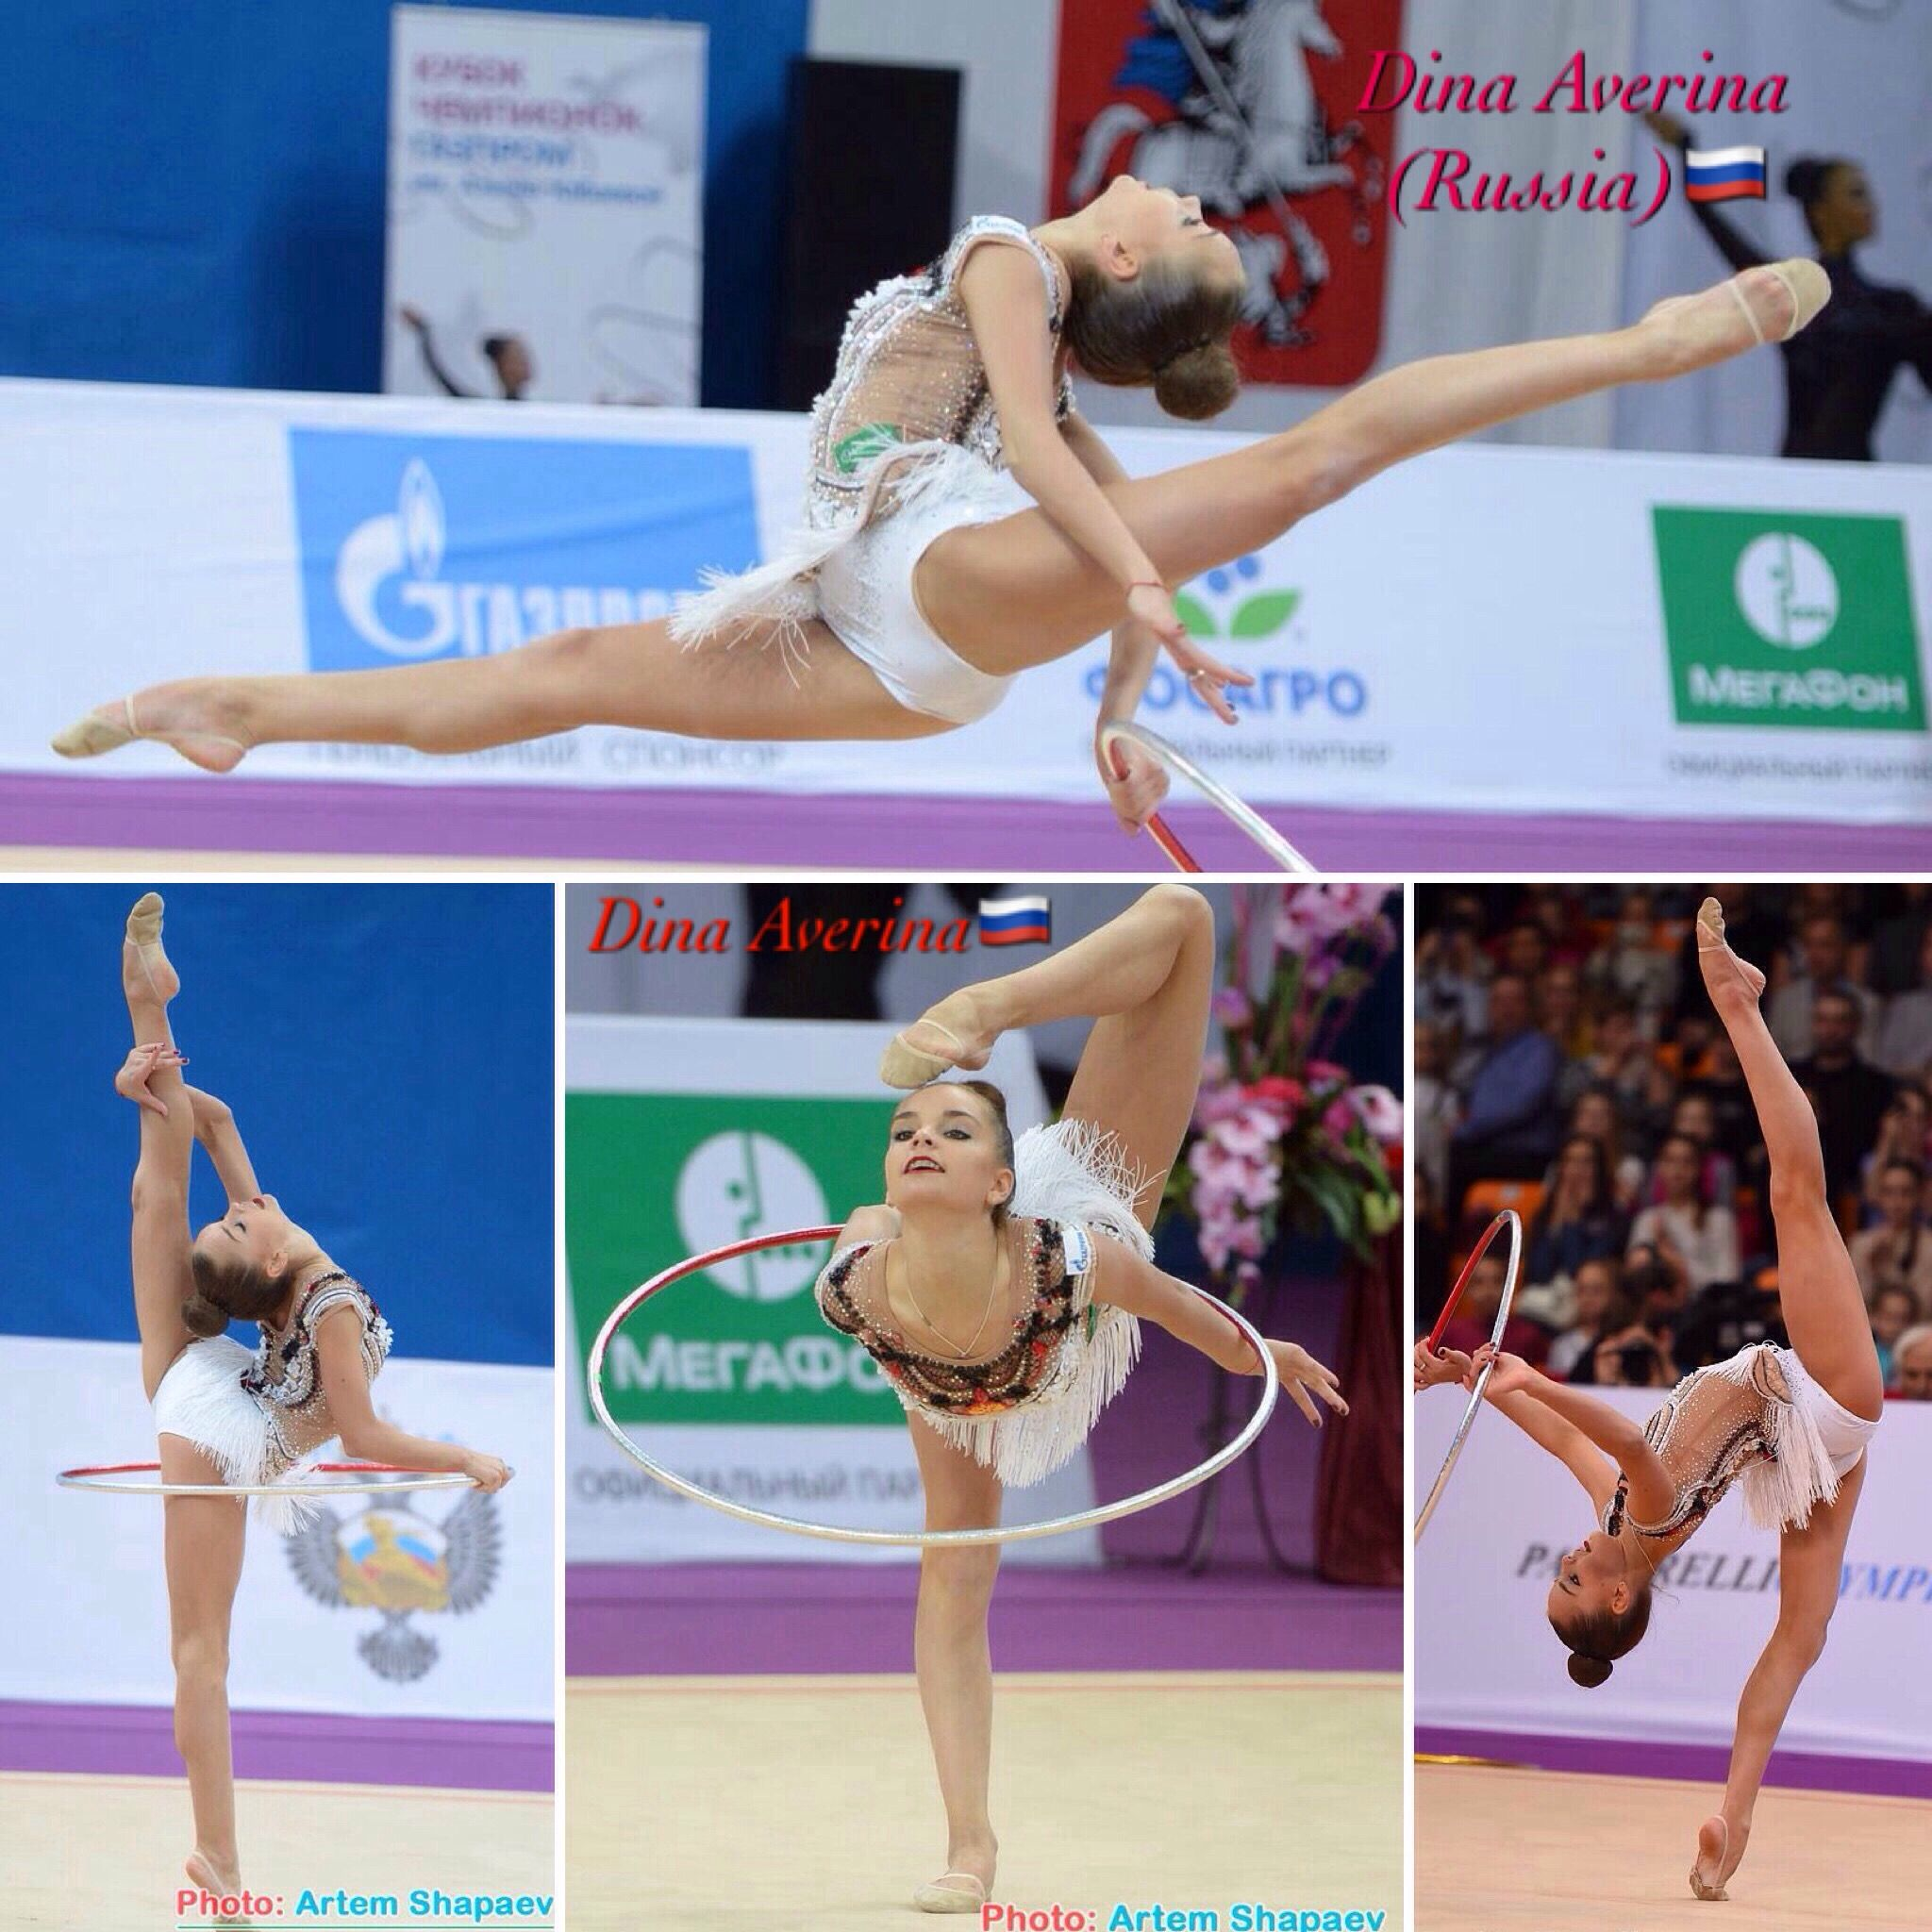 Dina AVERINA (Russia) ~ Collage Hoop routine @ GP Moscow 2017  Photographer Marianne  Piqurel  & Artem Sharpaev.